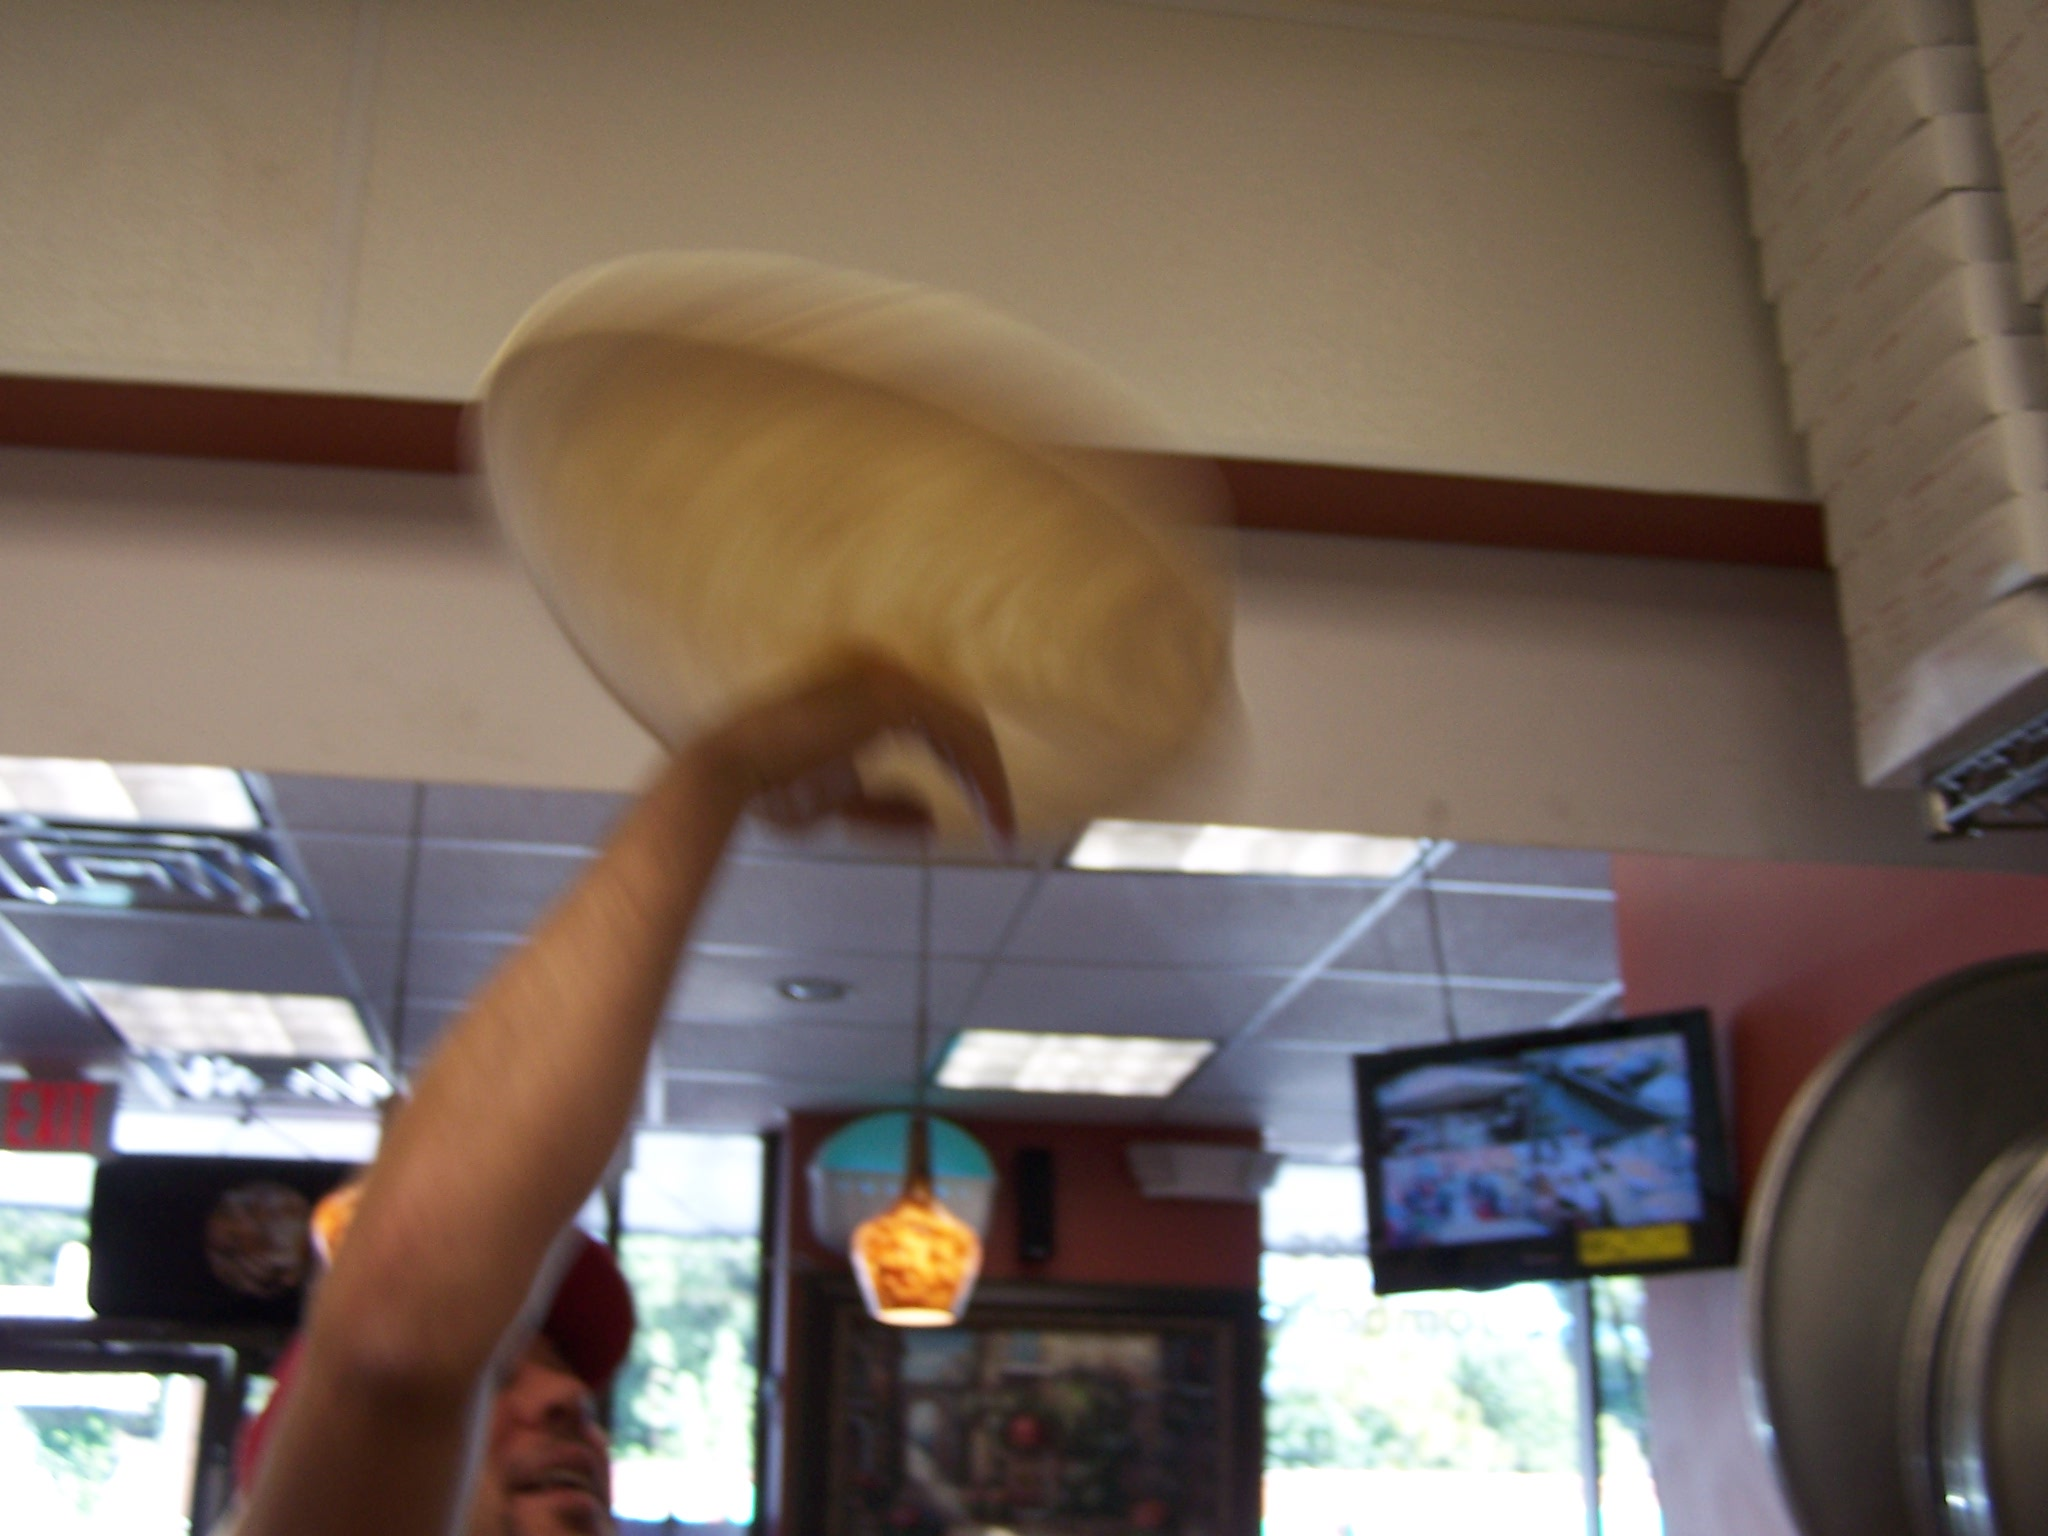 Our hand-tossed pizza crust is a family secret recipe at Mr. Pizza ...